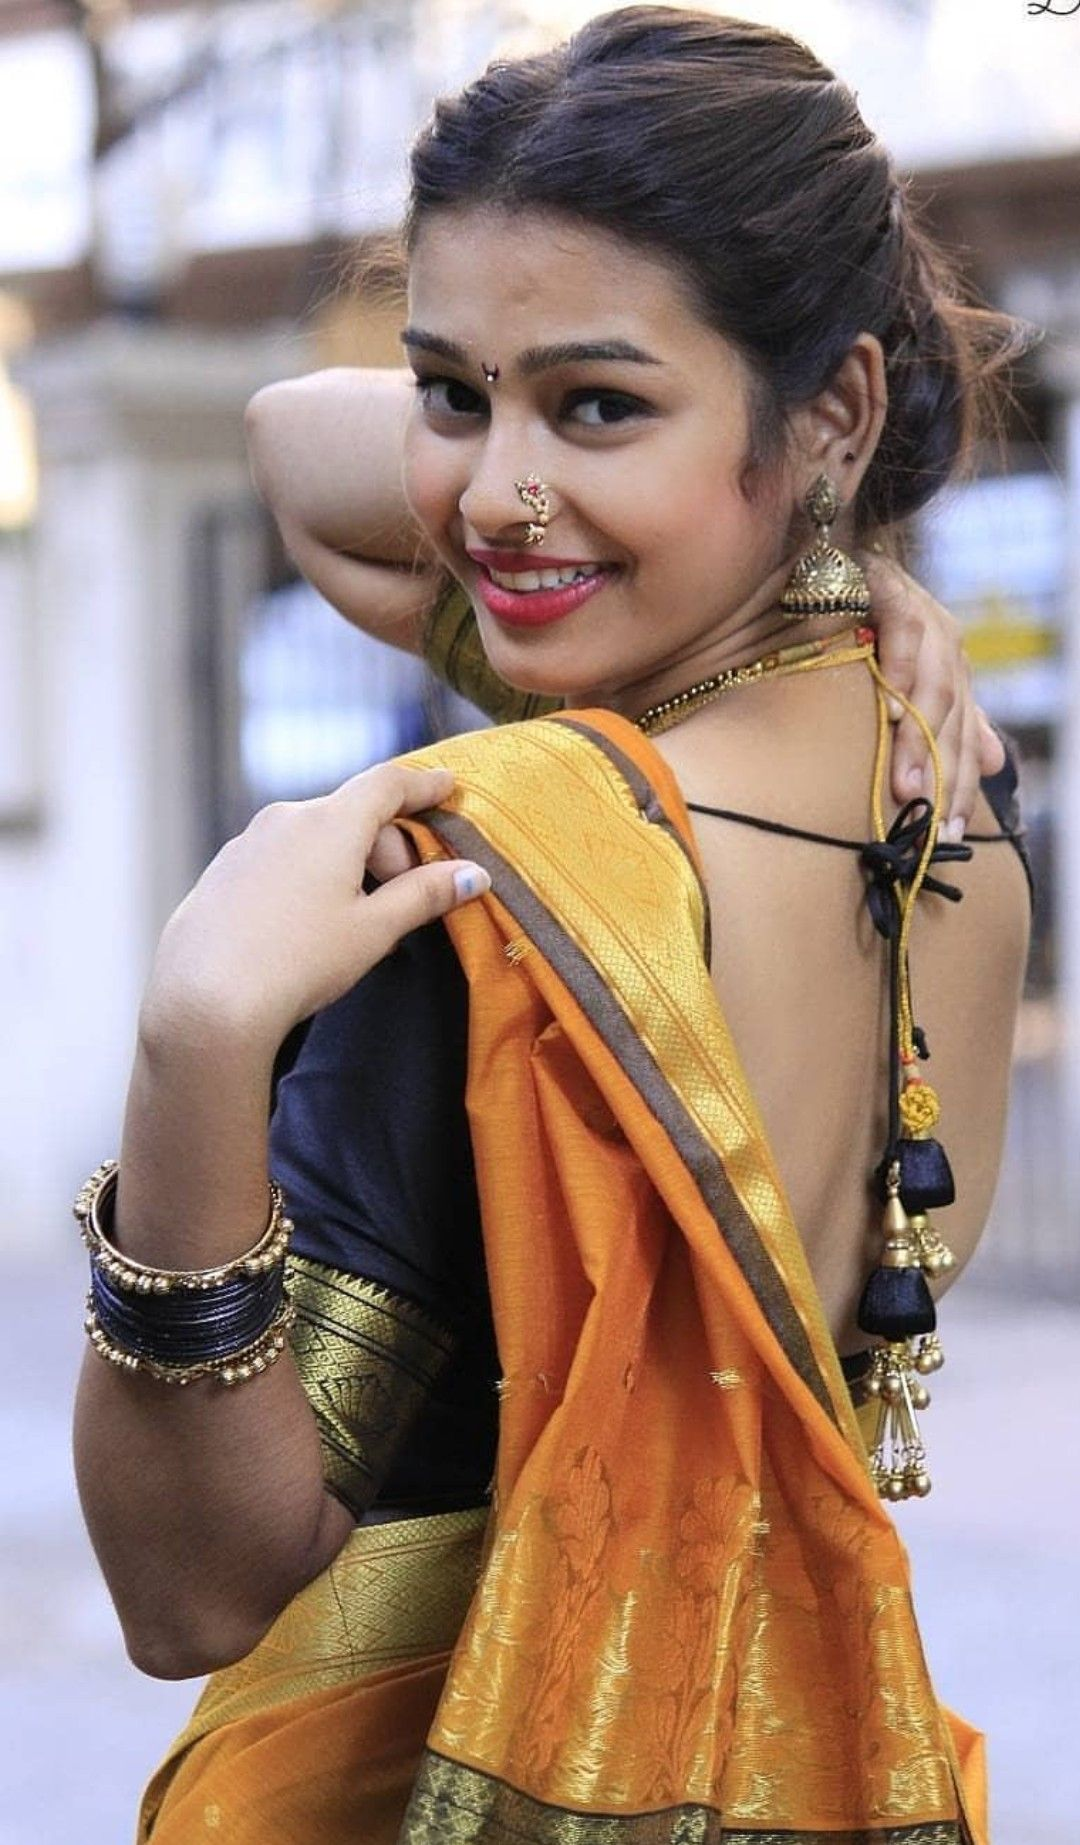 Pin By Mithun On Ricky  Pinterest  Saree, India Beauty And Indian Beauty-8386